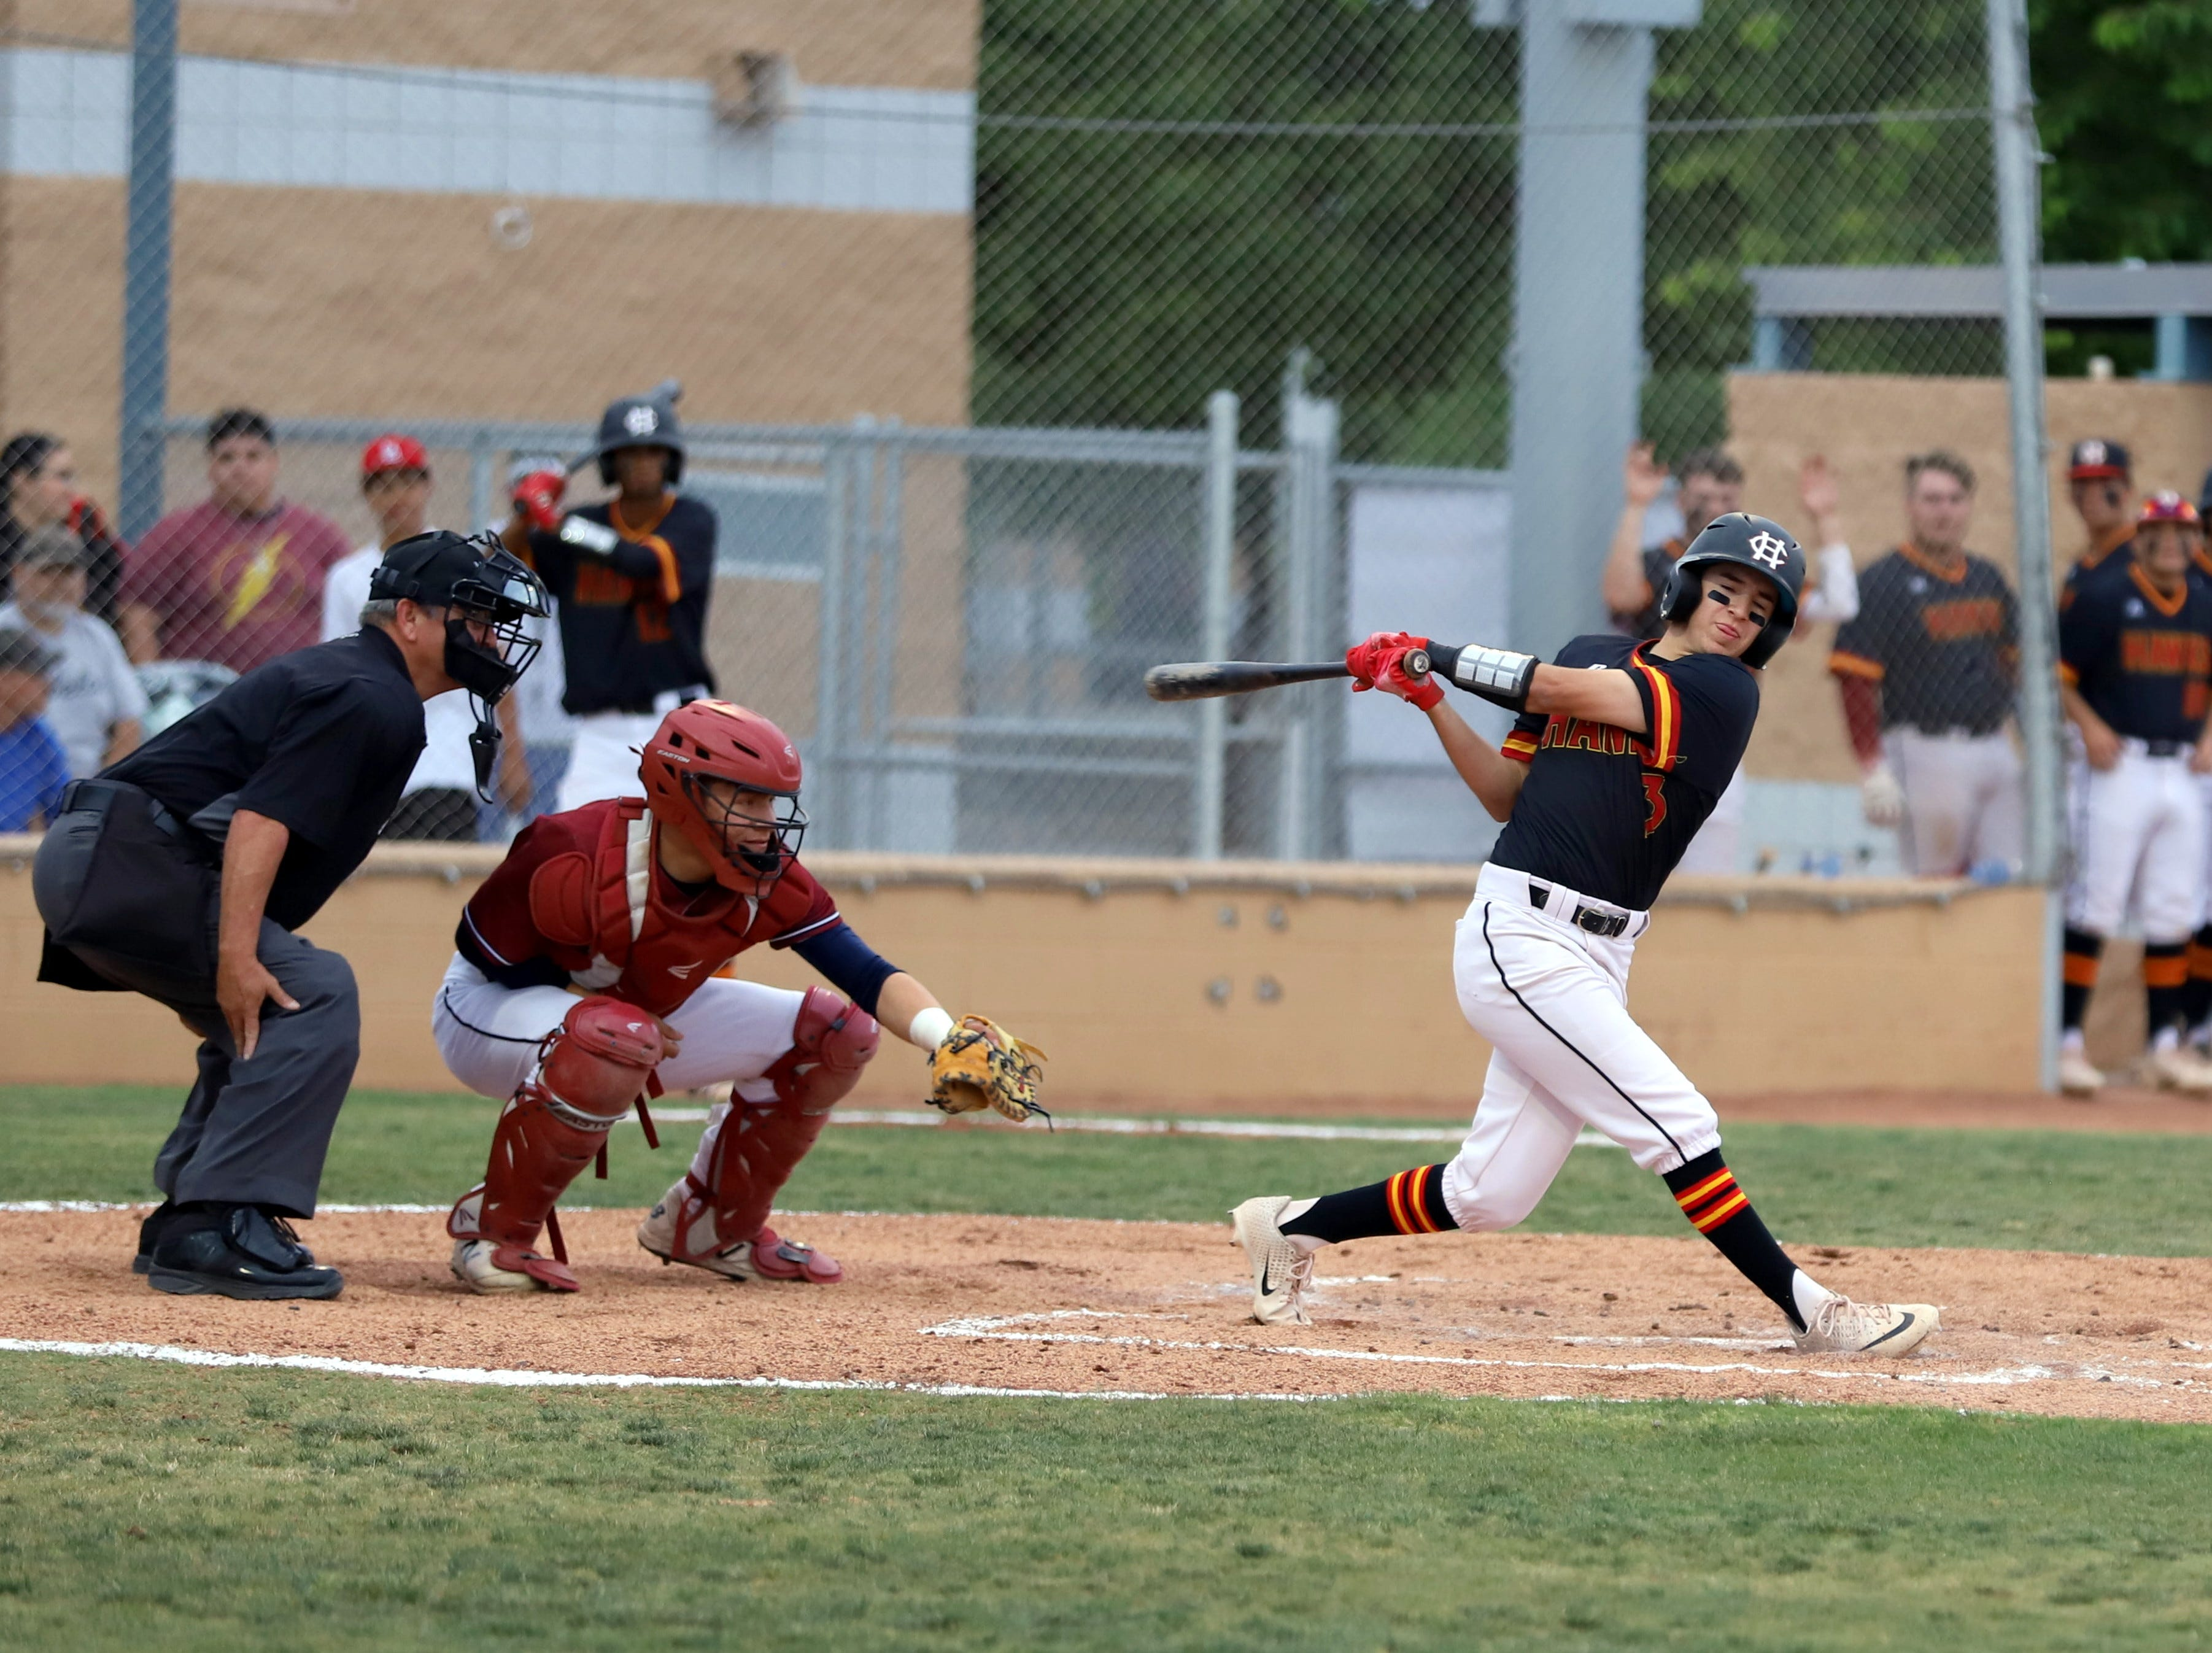 Centennial lead-off batter Dominic Tellez drove home the first two Hawks' runs with a sharp single in the second inning.